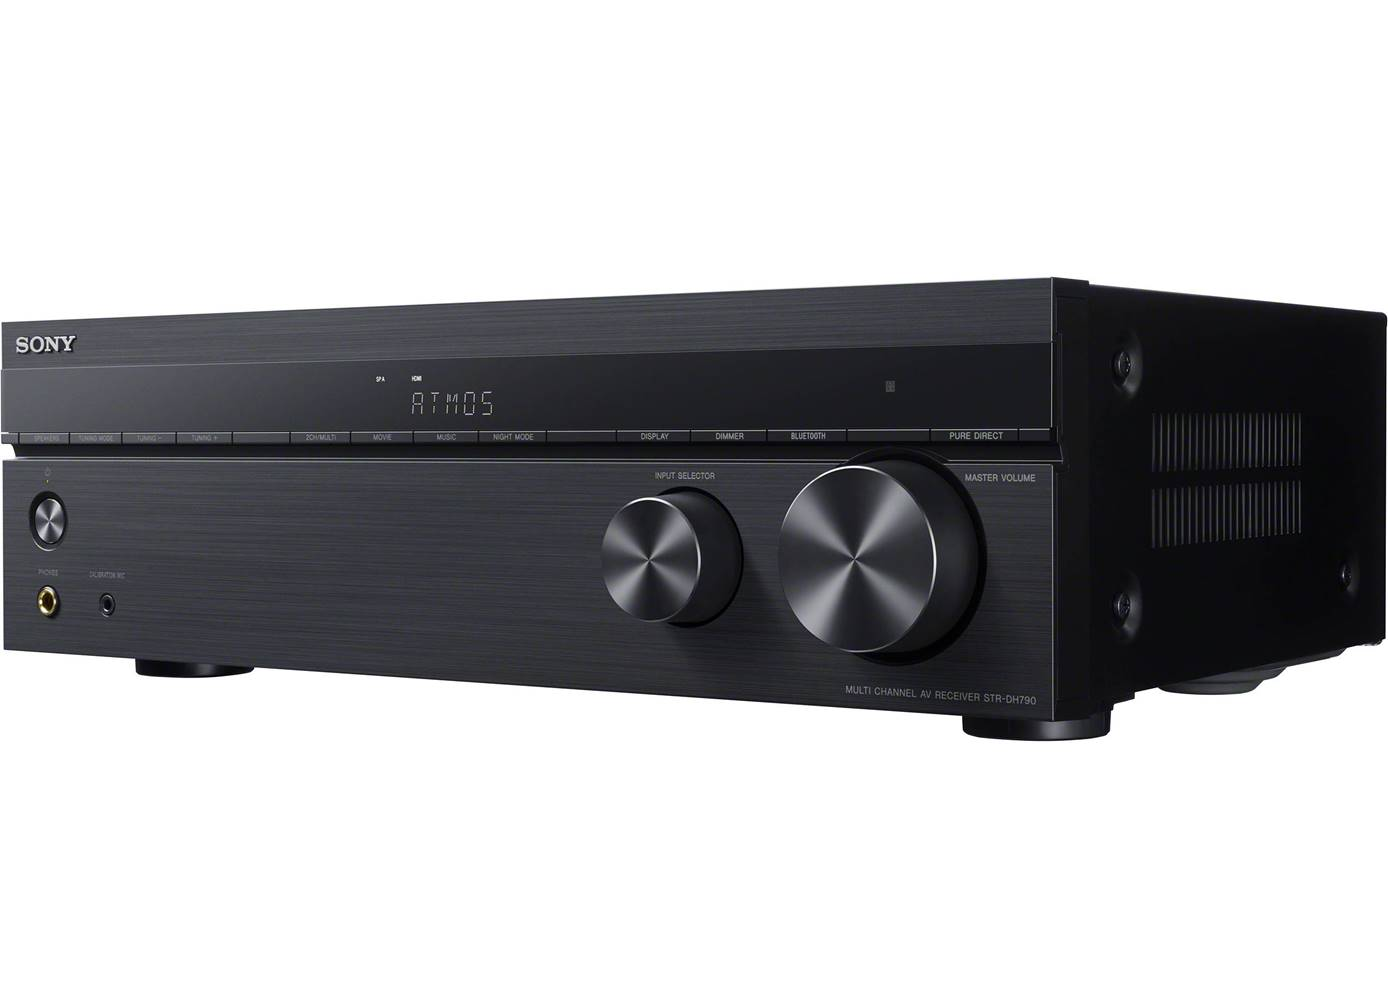 Sony STR-DH790 7.2 Surround Sound Receiver